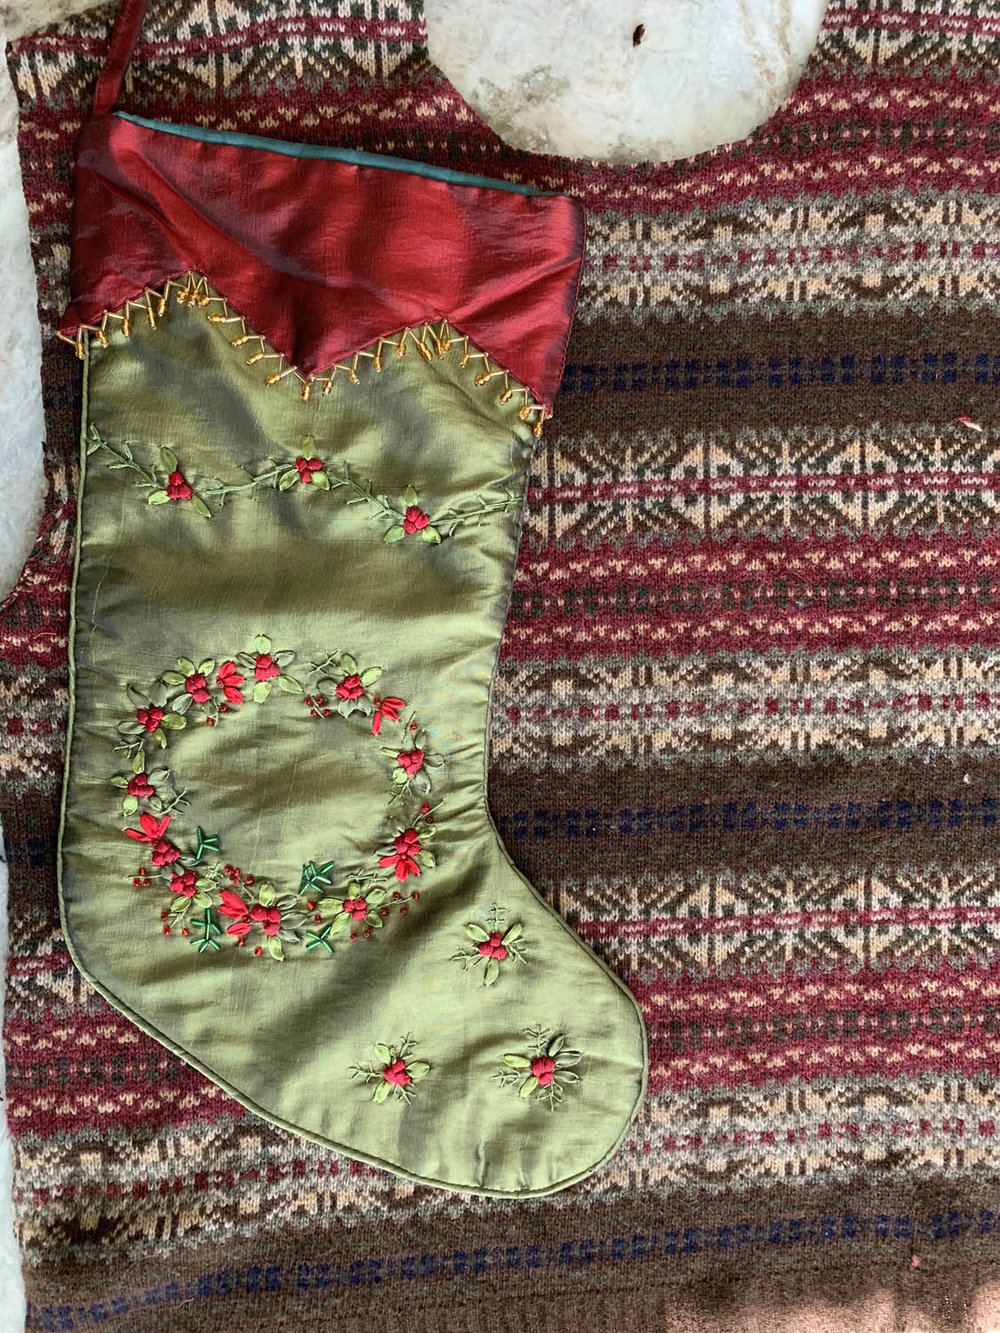 old stocking used as pattern